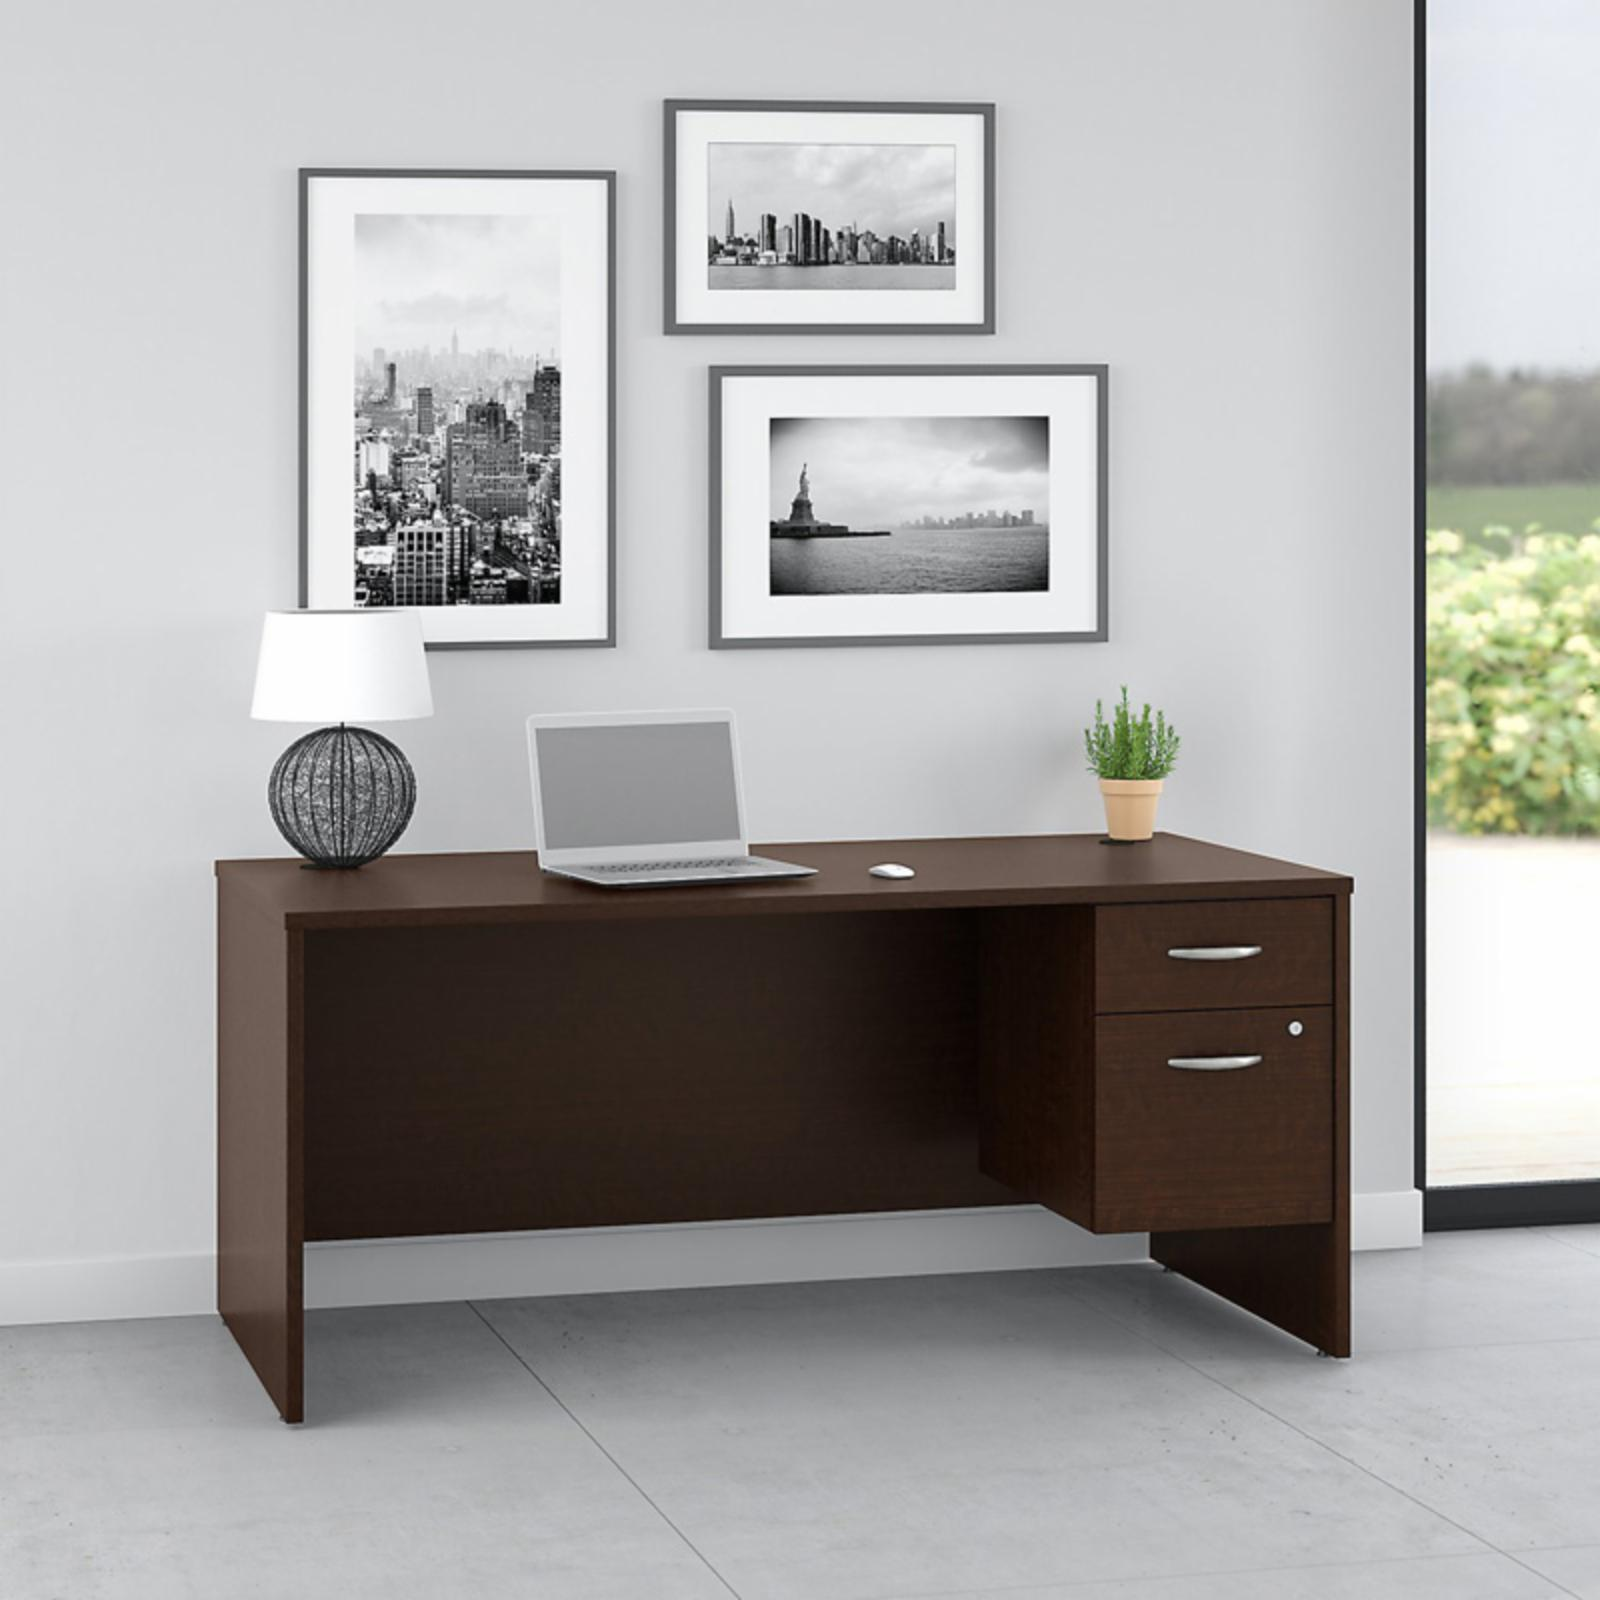 Office Connect Pro Office Computer Desk with Pedestal - PRF001MR